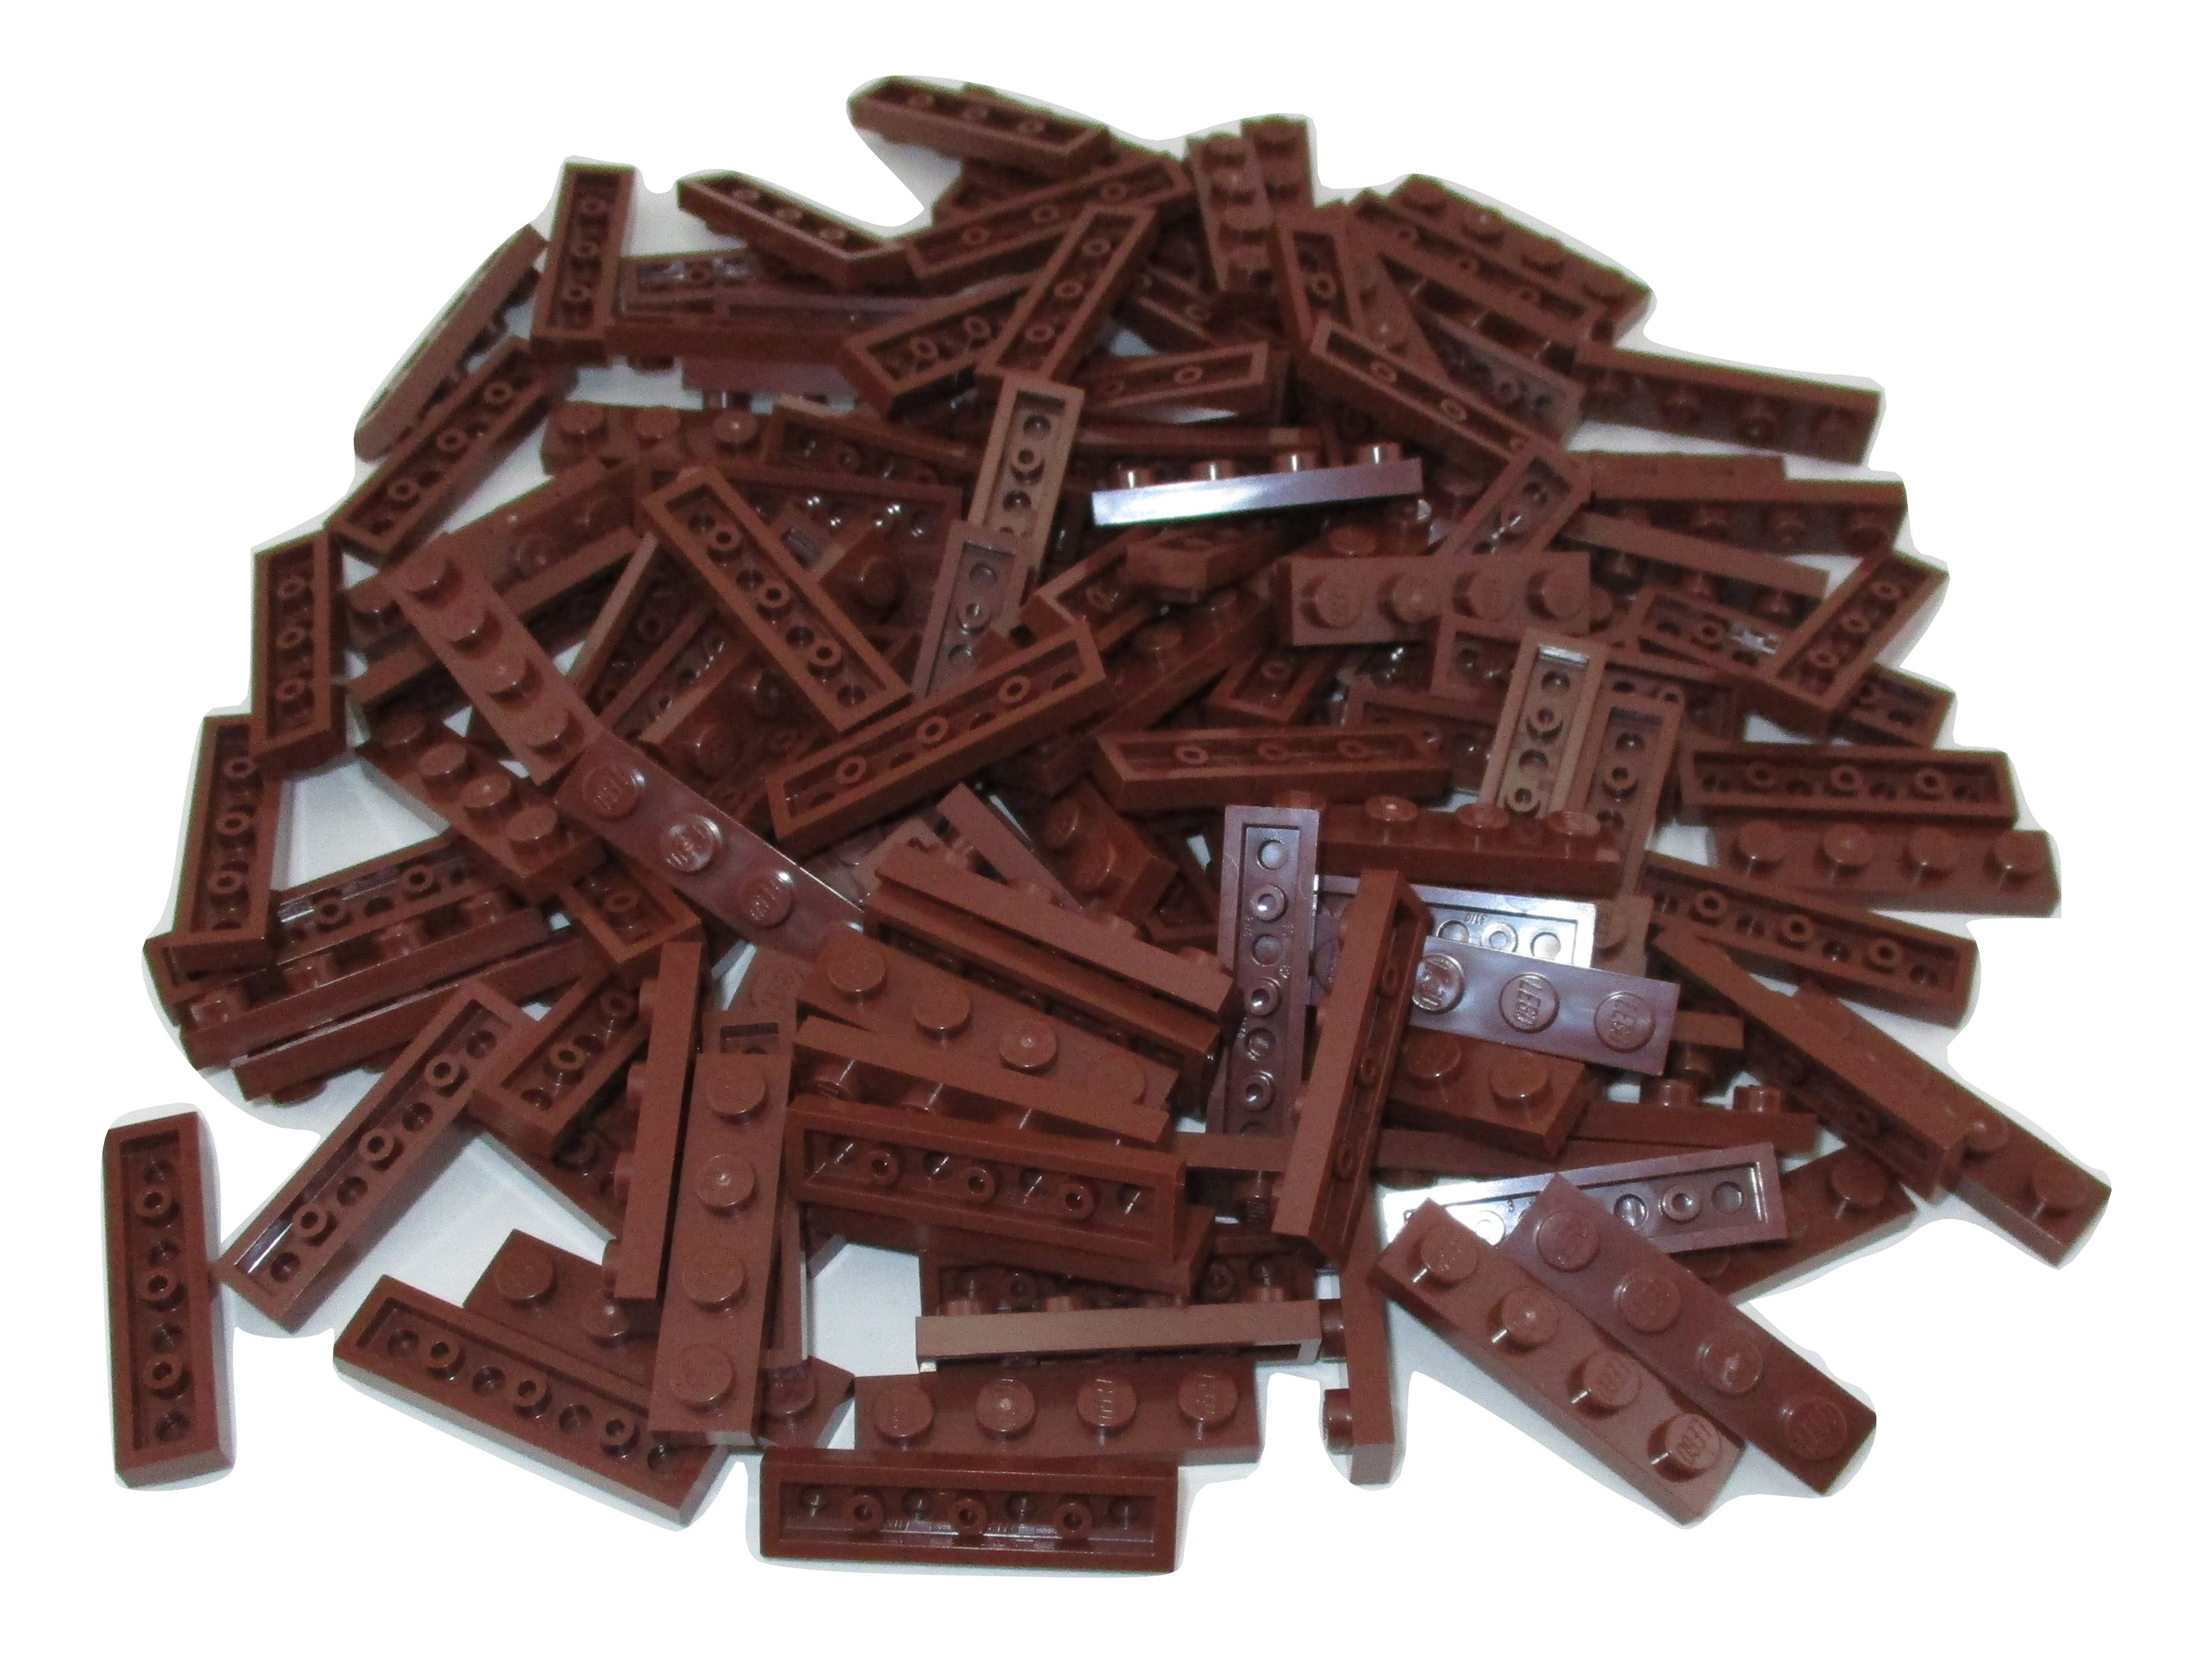 LEGO Reddish Brown Plate 1x4 Lot of 100 Parts Pieces 3710